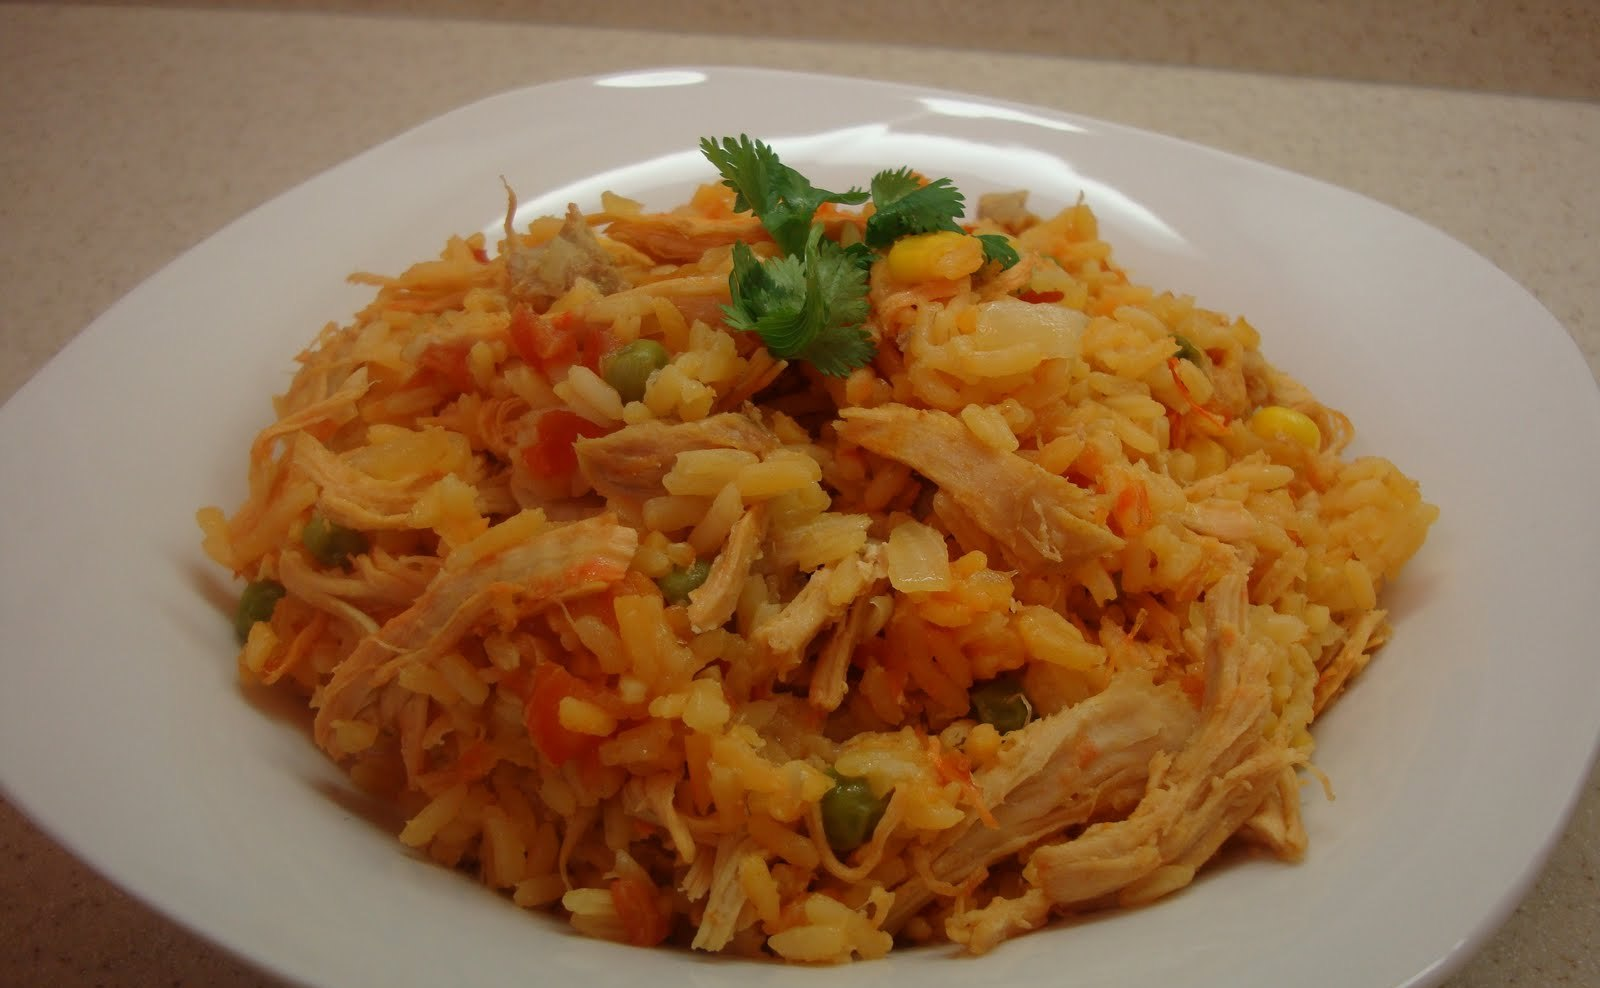 Arroz con pollo sercano tv - Arroz en blanco con pollo ...